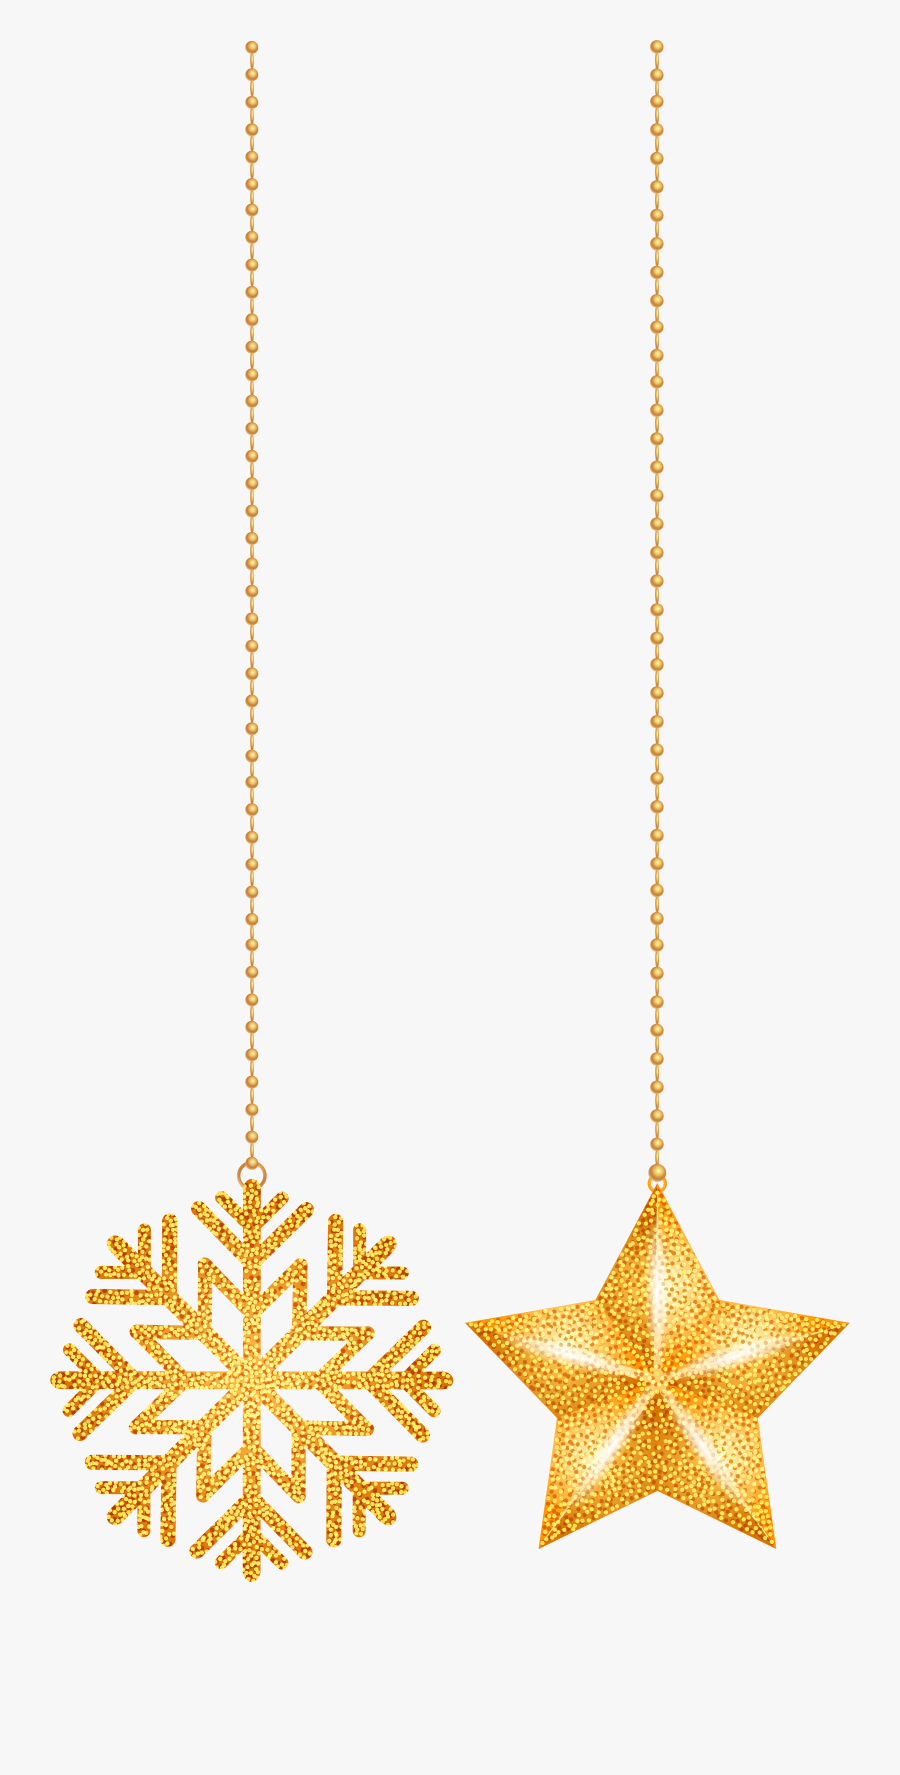 Hanging Christmas Decor Png - Hanging Christmas Decoration Png, Transparent Clipart